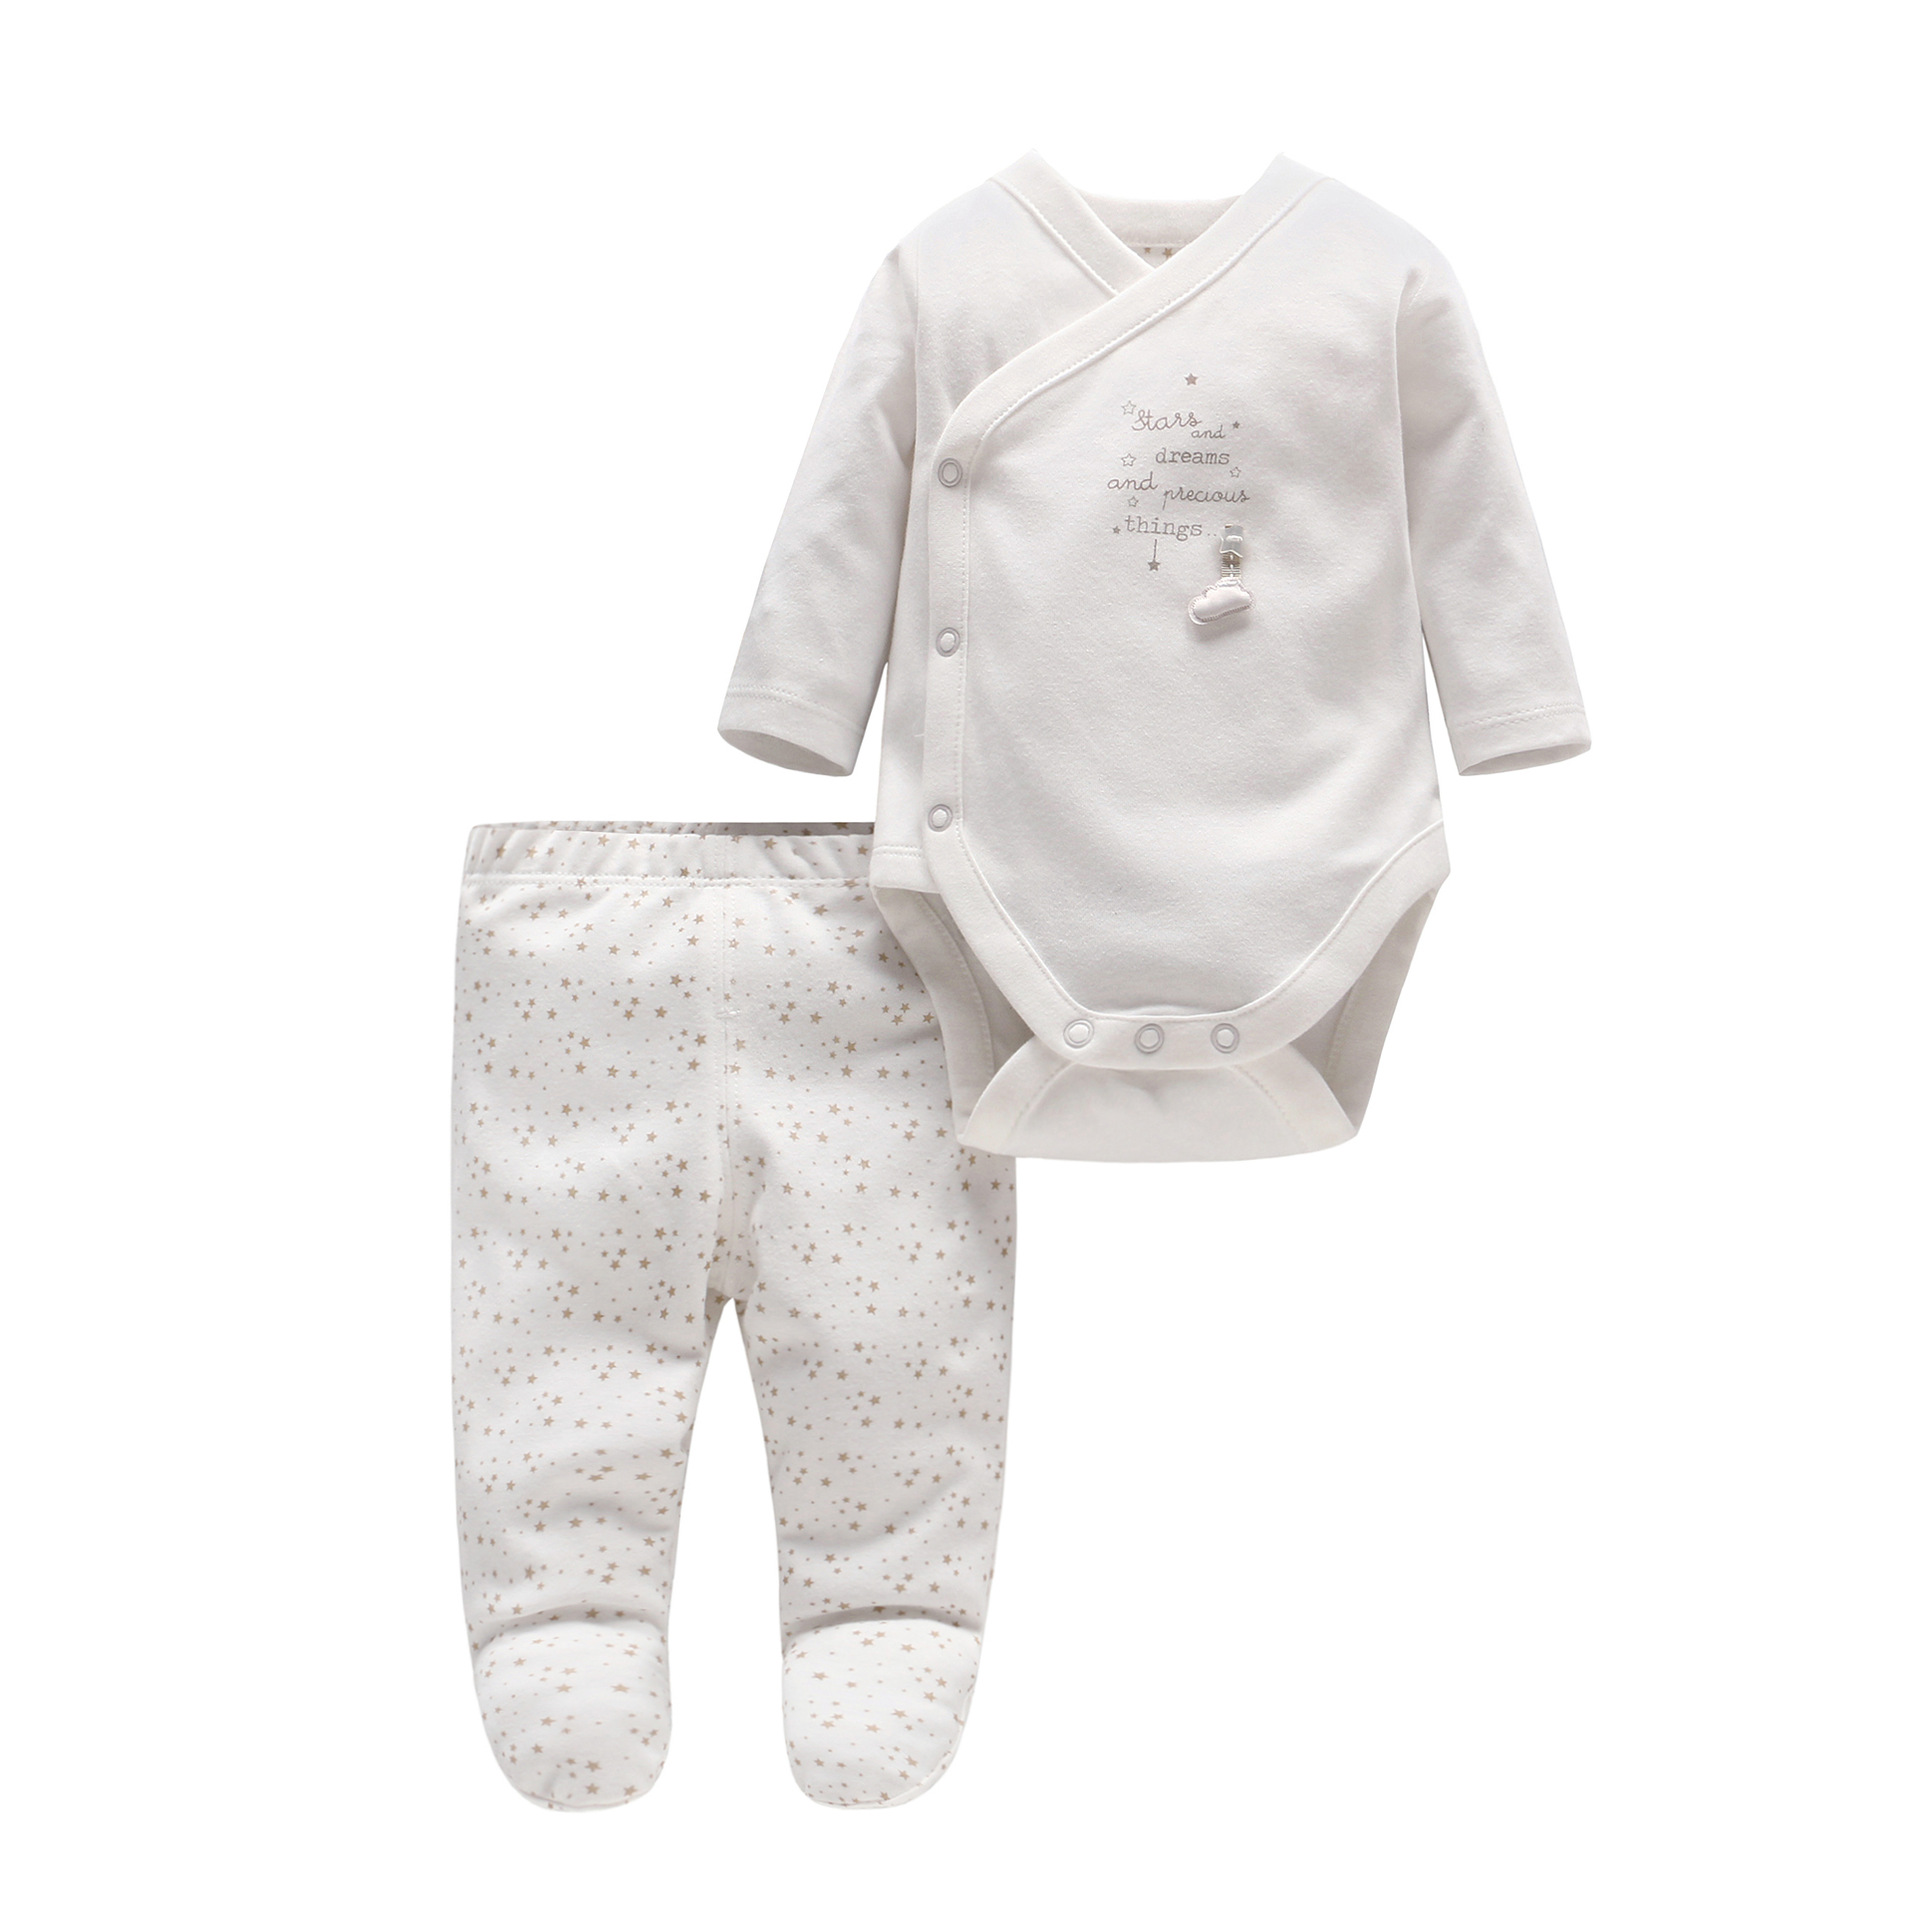 2pcs/set Baby Boy Clothes Set Newborn Baby Cotton Long Sleeve Star And Letter Rompers Set Infant Girl One-piece And Pants Set newborn infant girl boy long sleeve romper floral deer pants baby coming home outfits set clothes